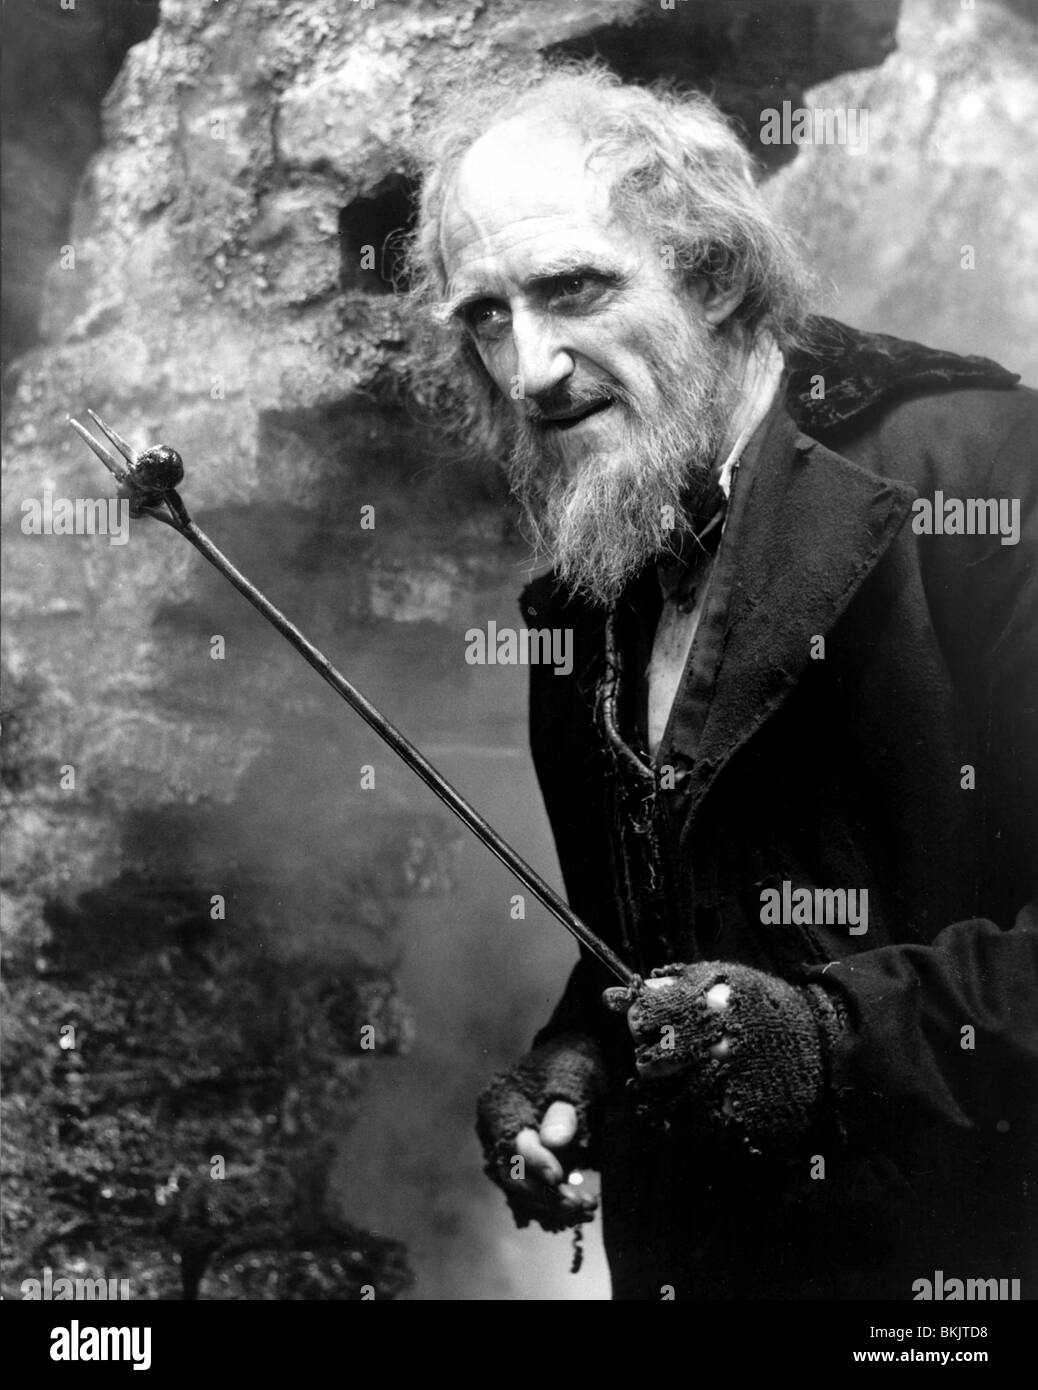 OLIVER! -1968 RON MOODY - Stock Image